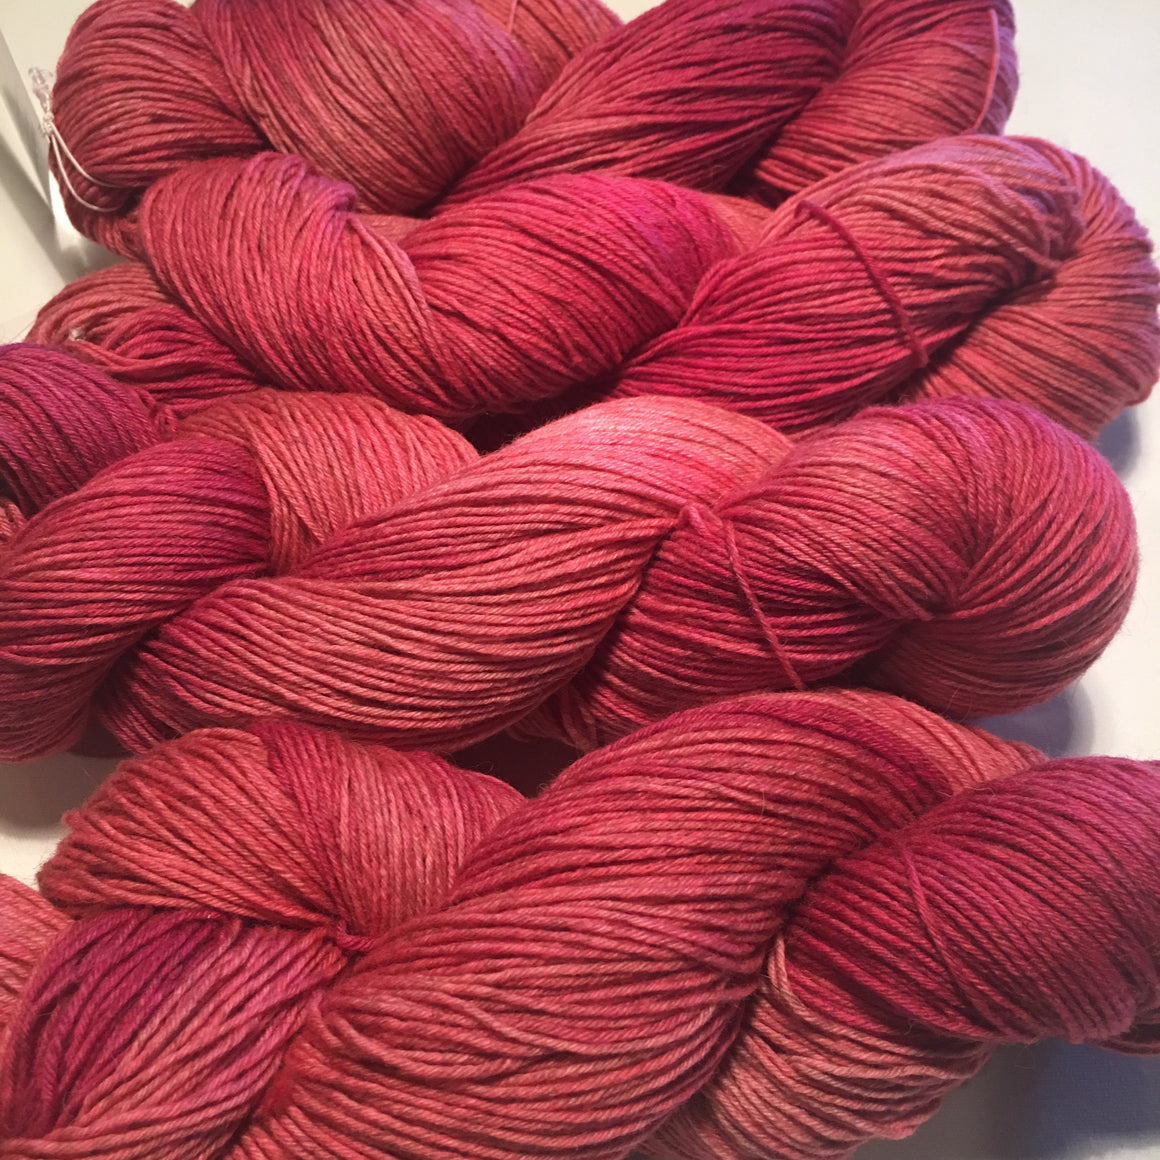 """Tippling Pink"" is a mixture of pink tones that burst from the bison blend fingering weight yarn"